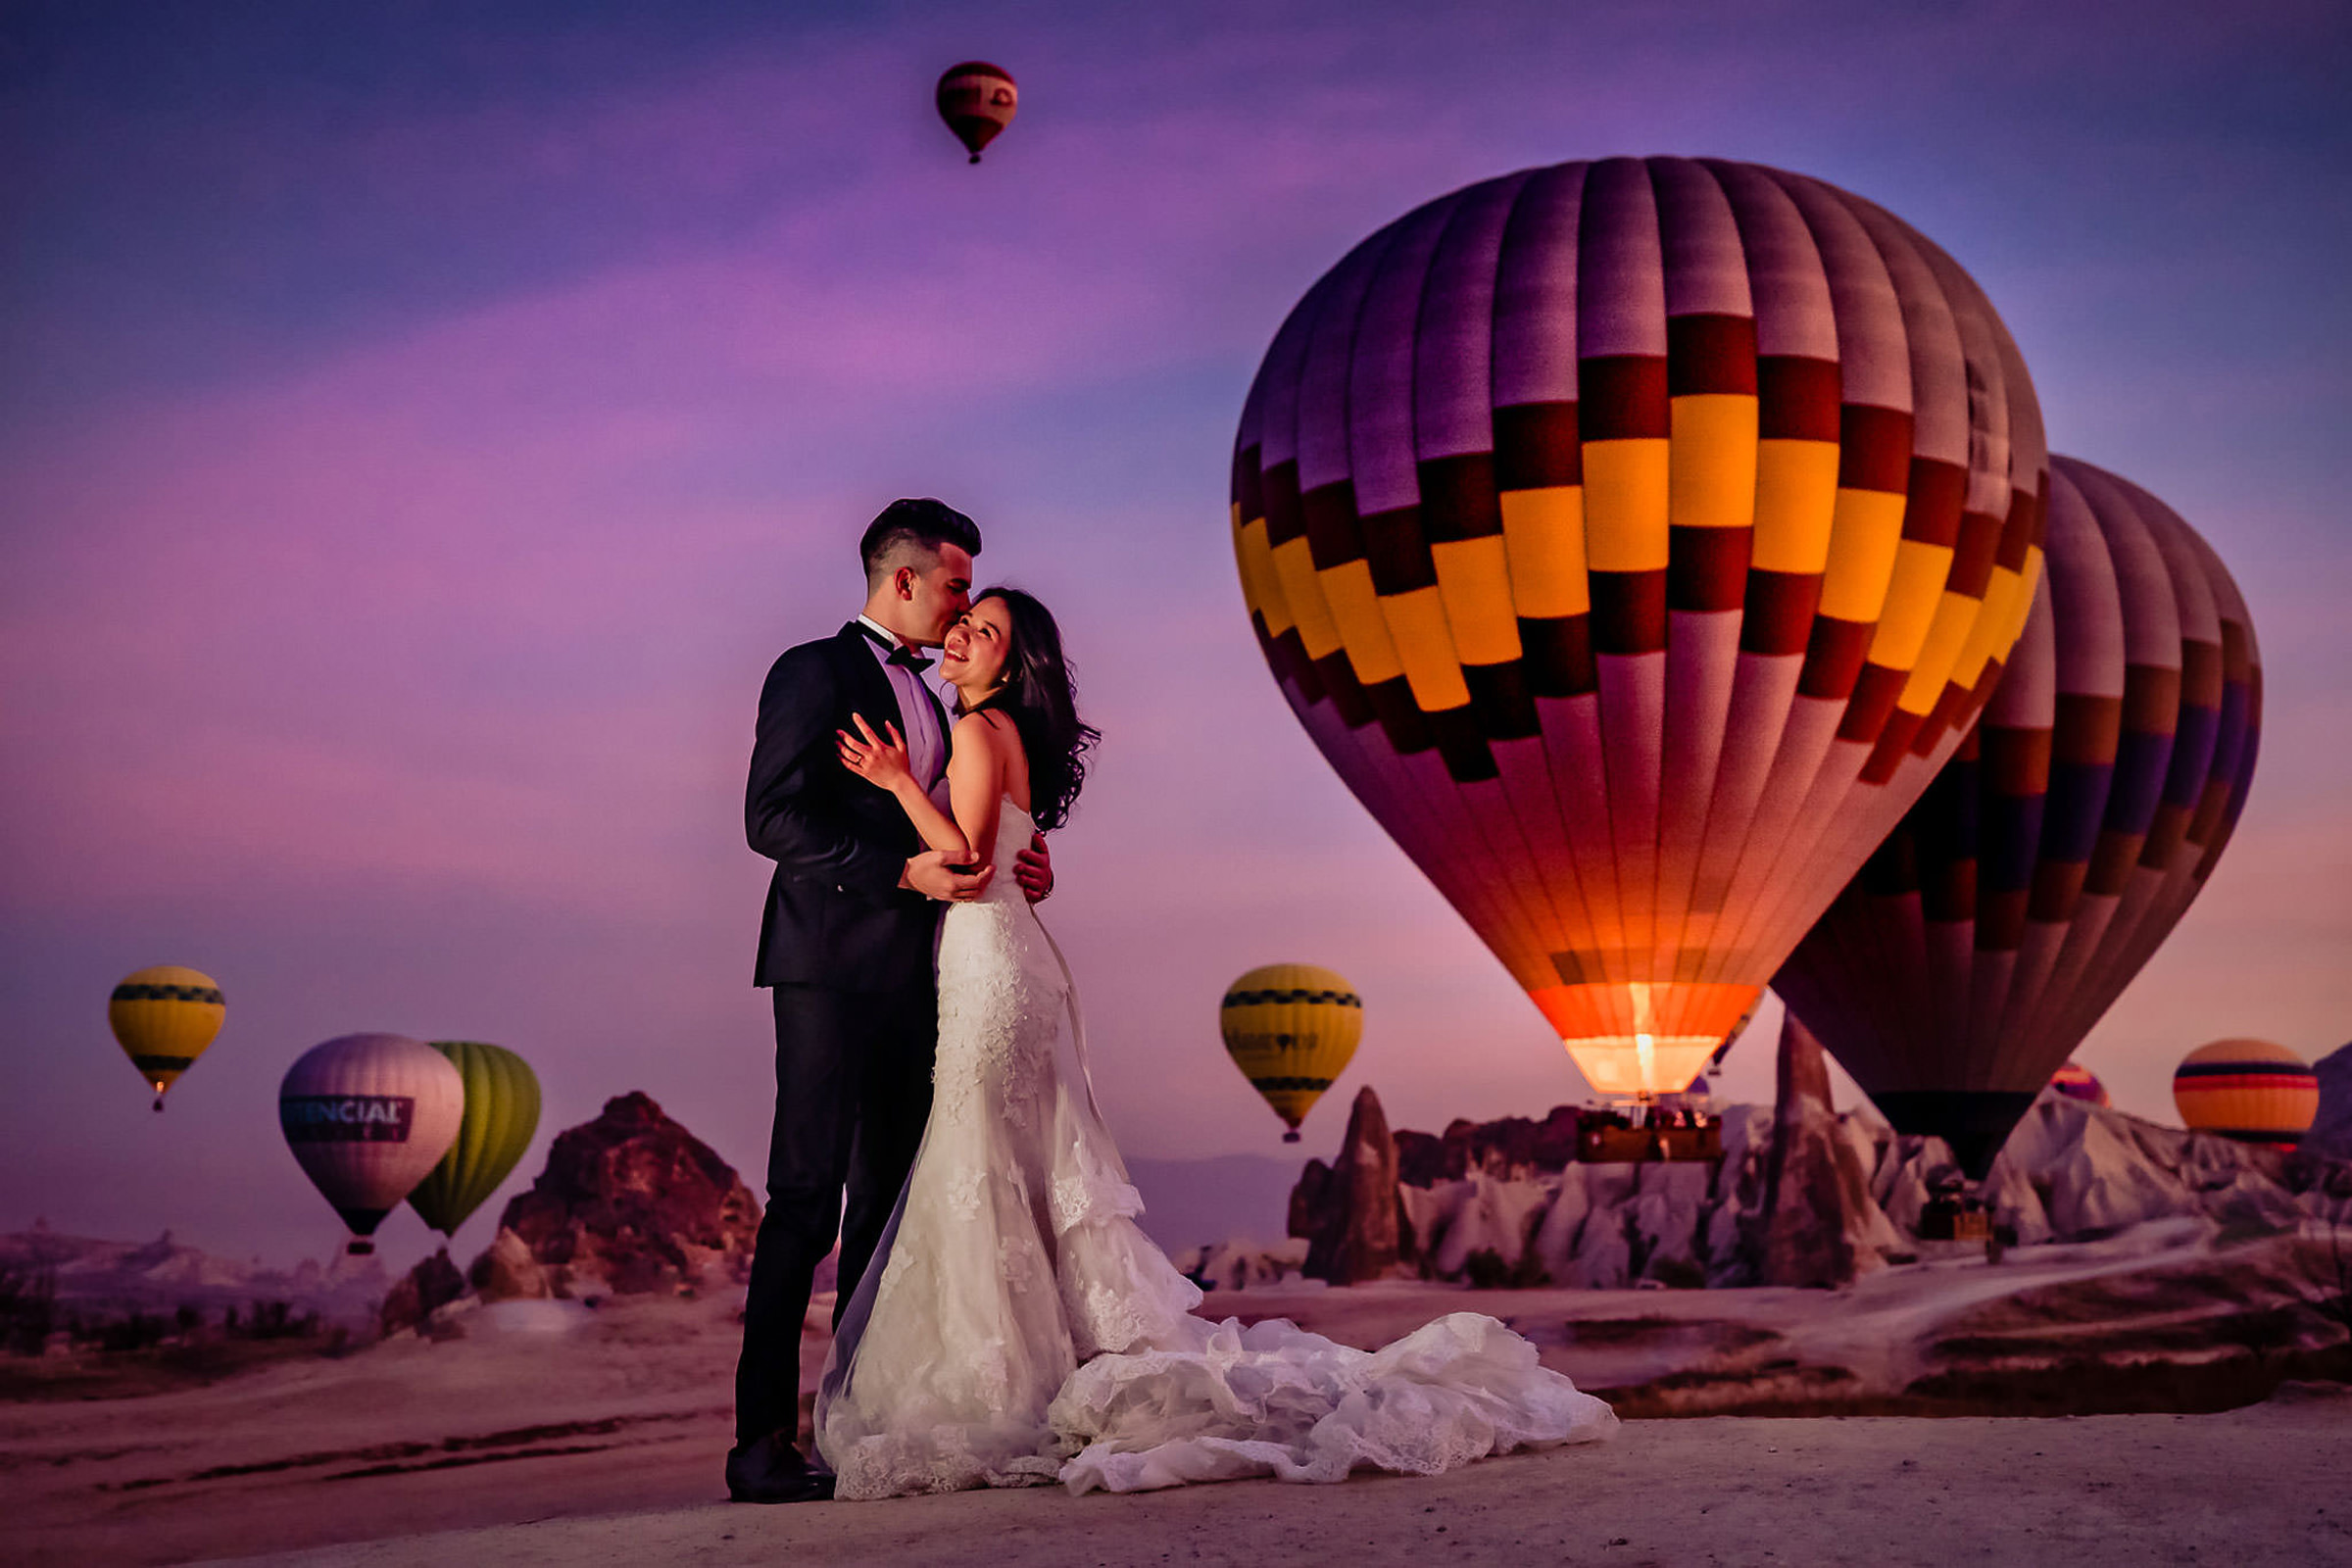 Couple against hot air balloons - photo by Eppel Photography